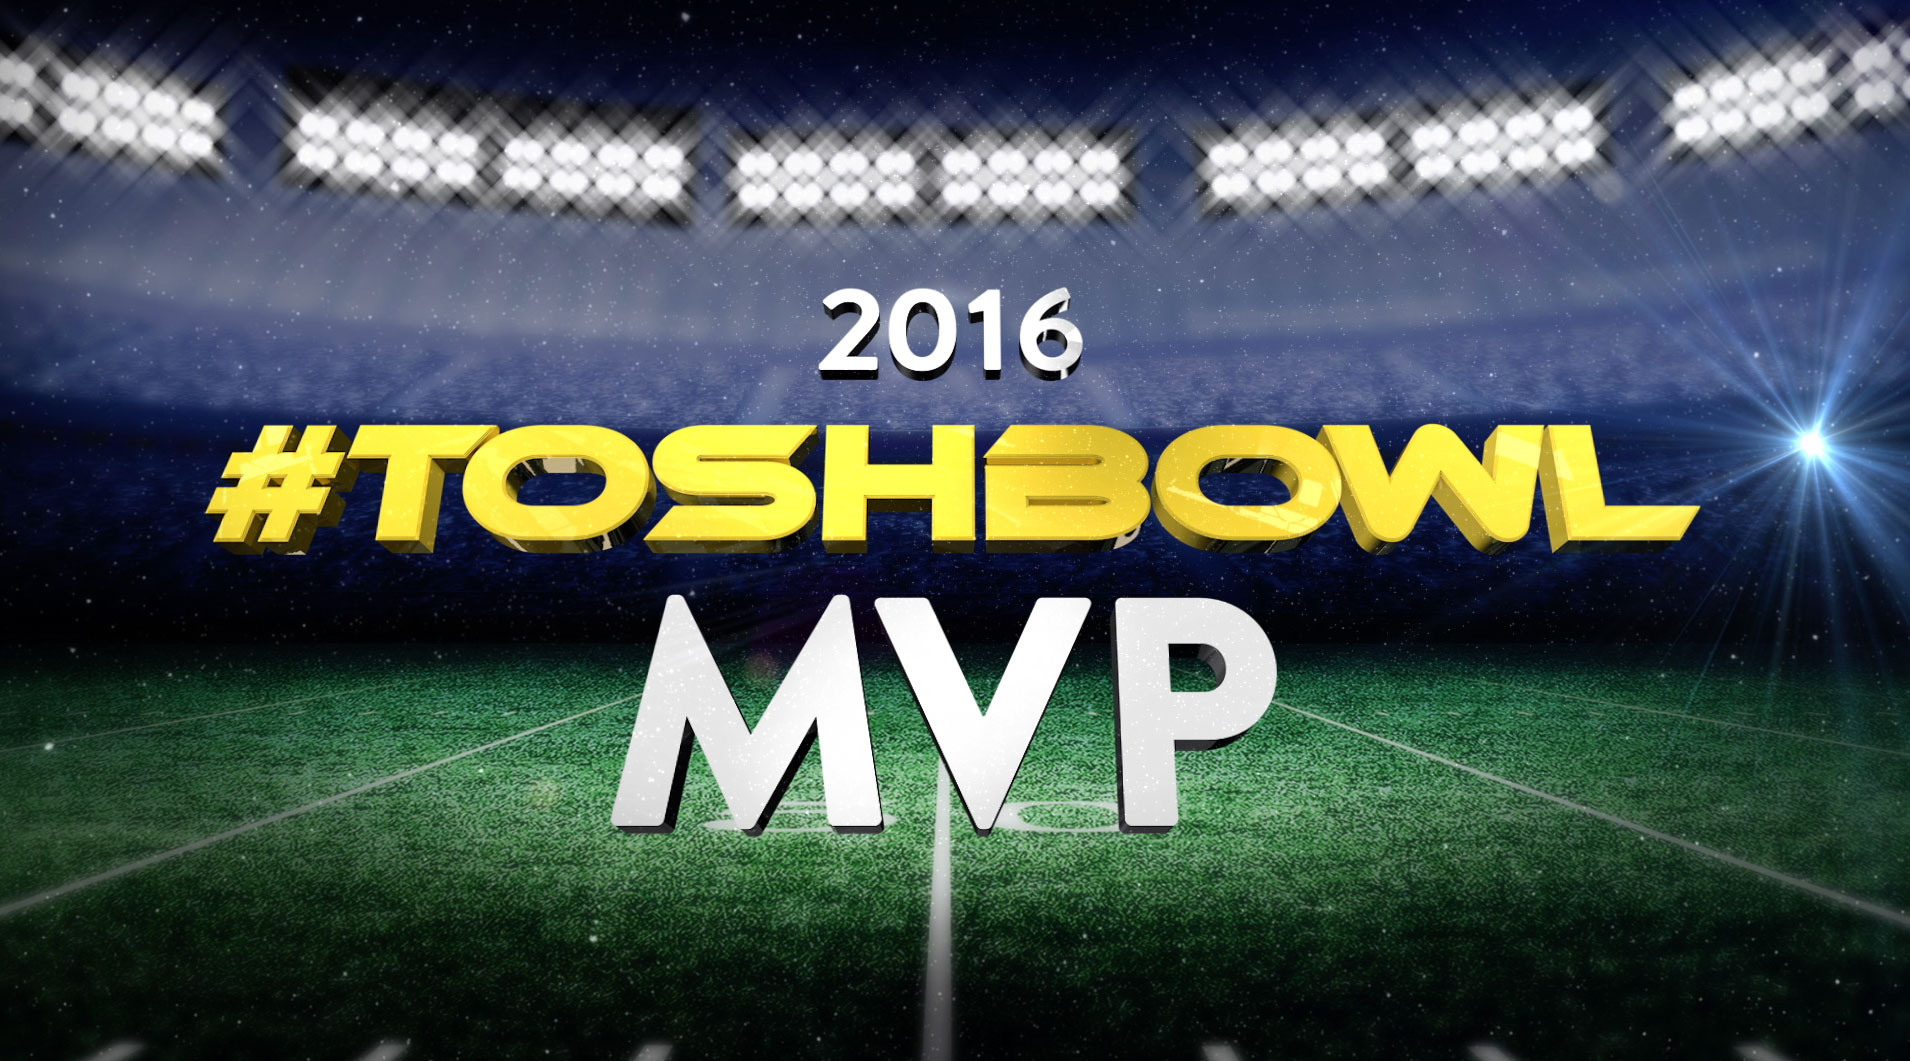 - INTRODUCING THE TOSHBOWL MVP